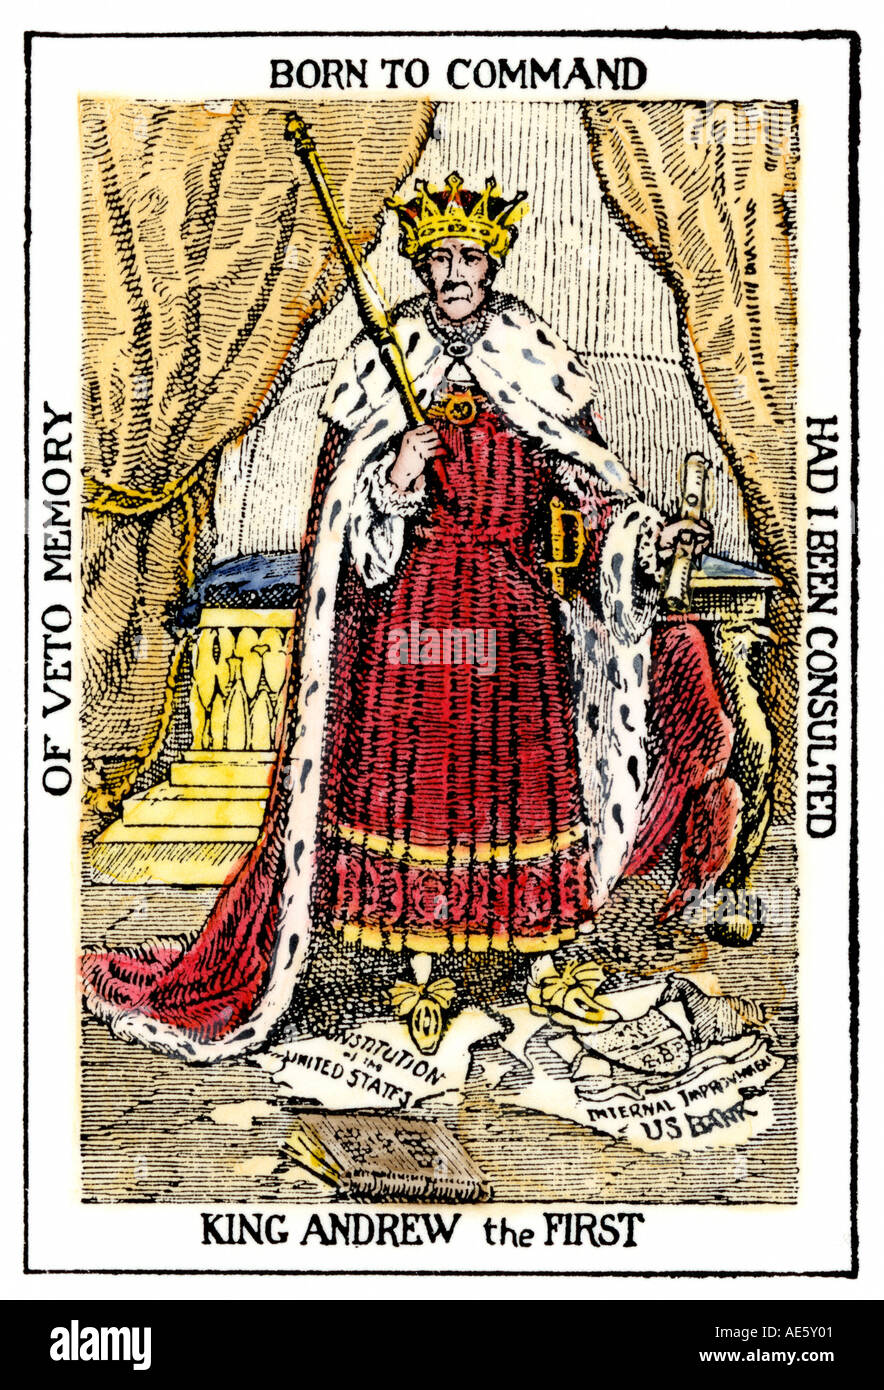 Cartoon of President Andrew Jackson as King Andrew the First. Hand-colored woodcut - Stock Image